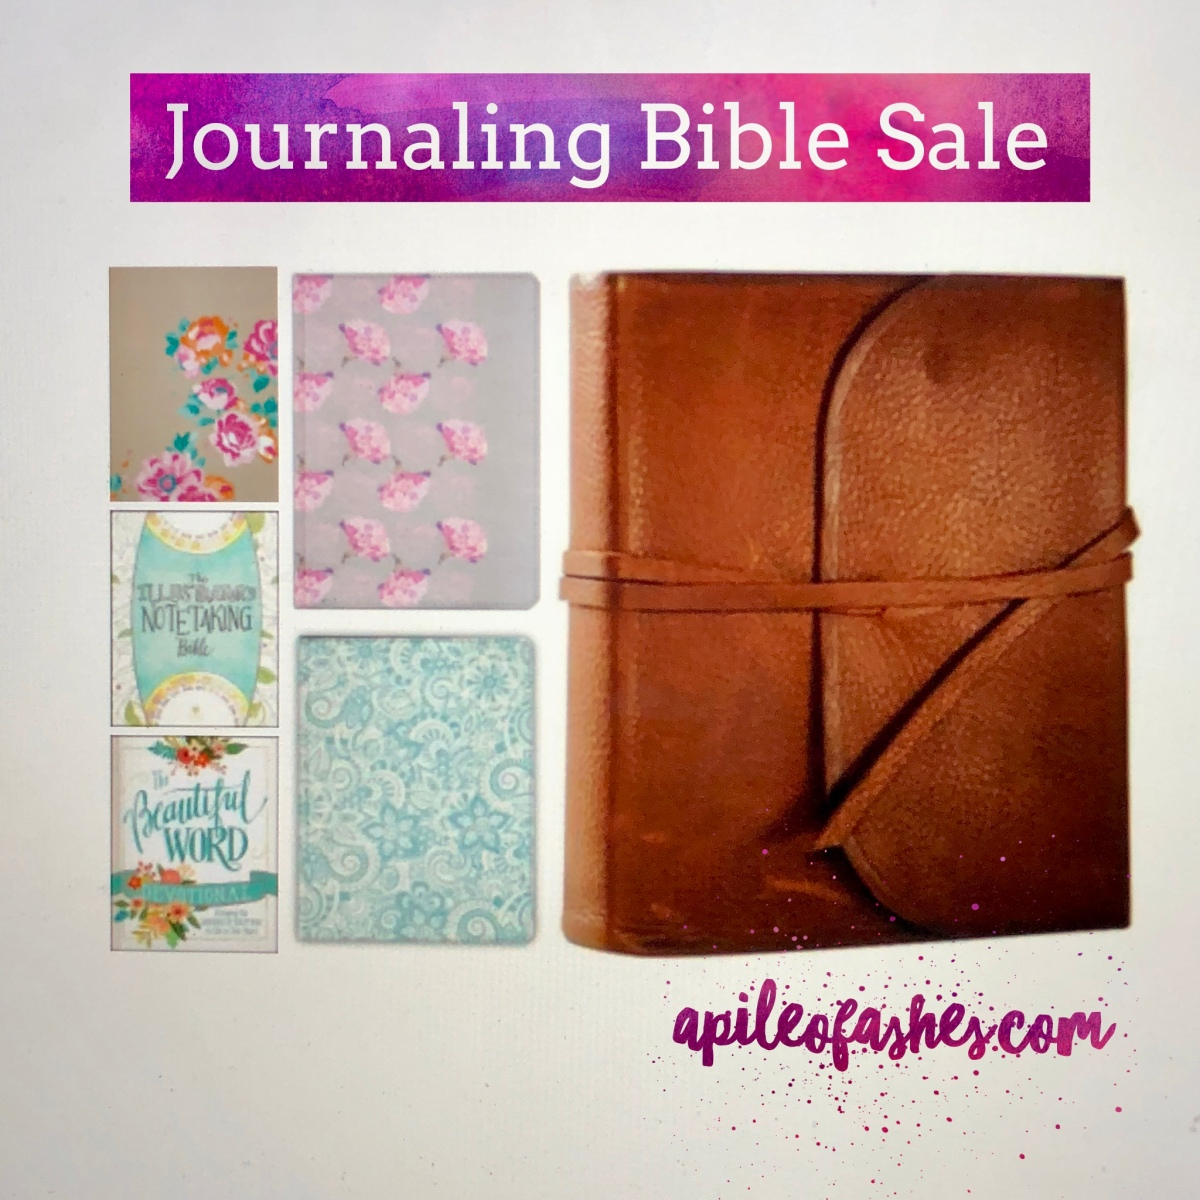 Huge Bible Sale Going On